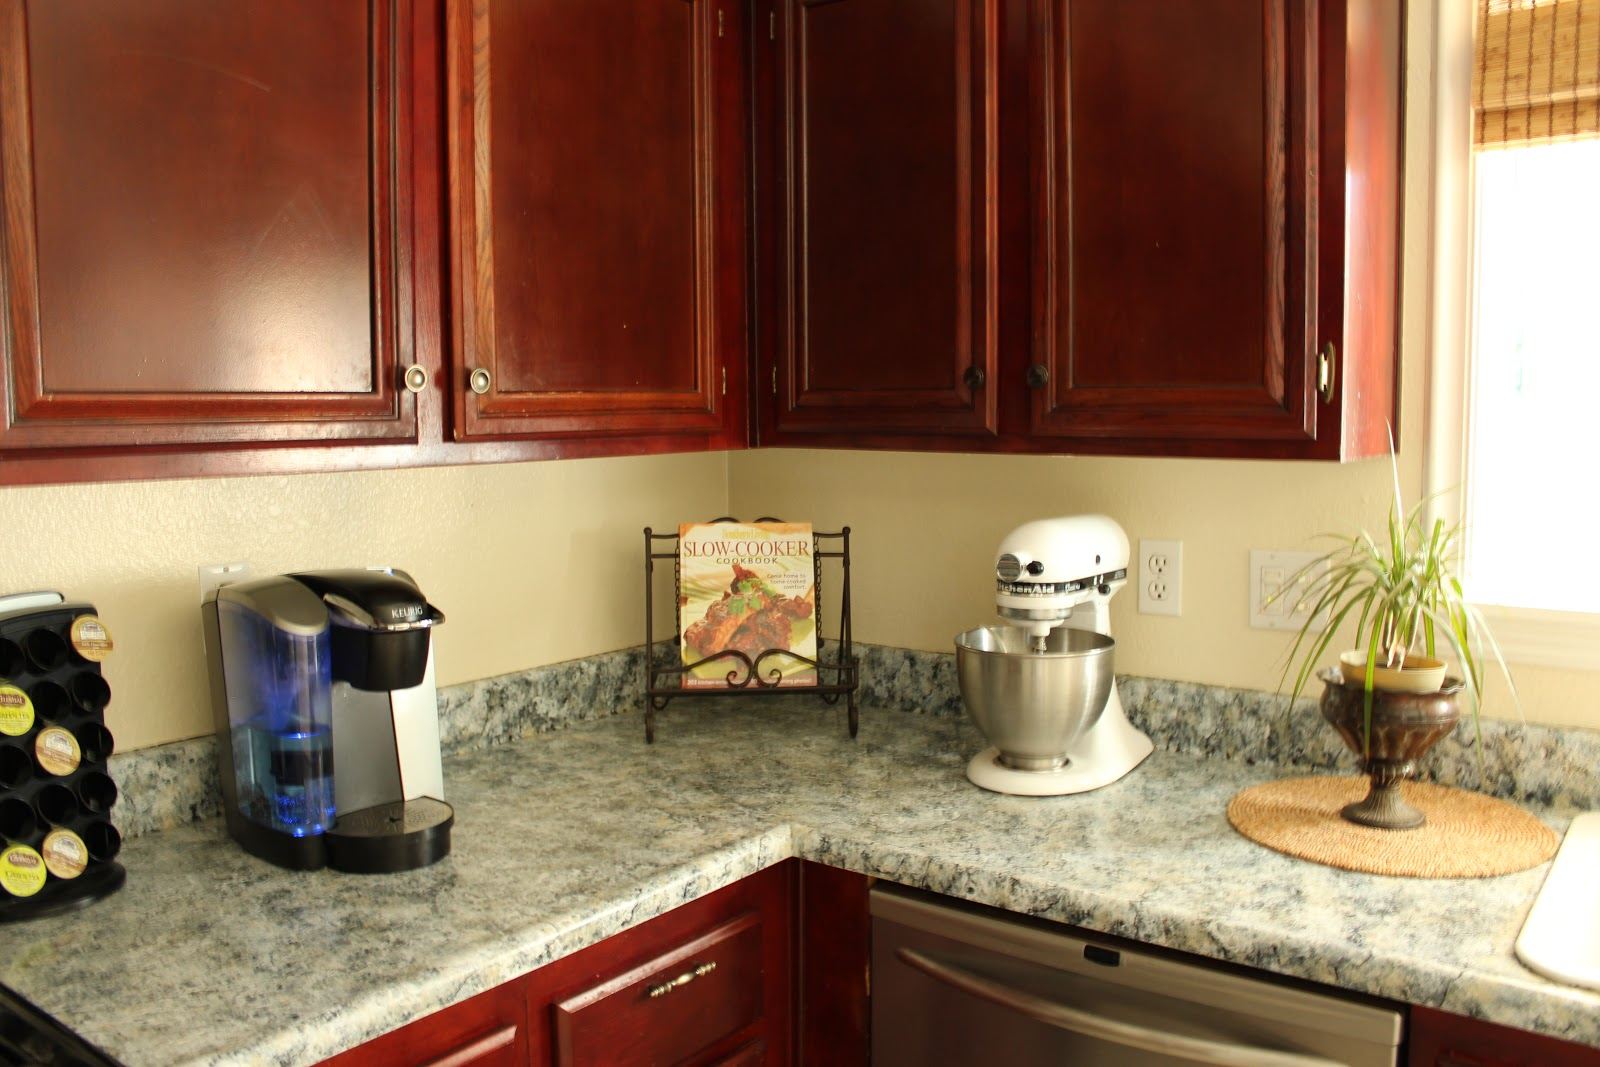 Four marrs and one venus kitchen update on a budget with for Kitchen updates on a budget